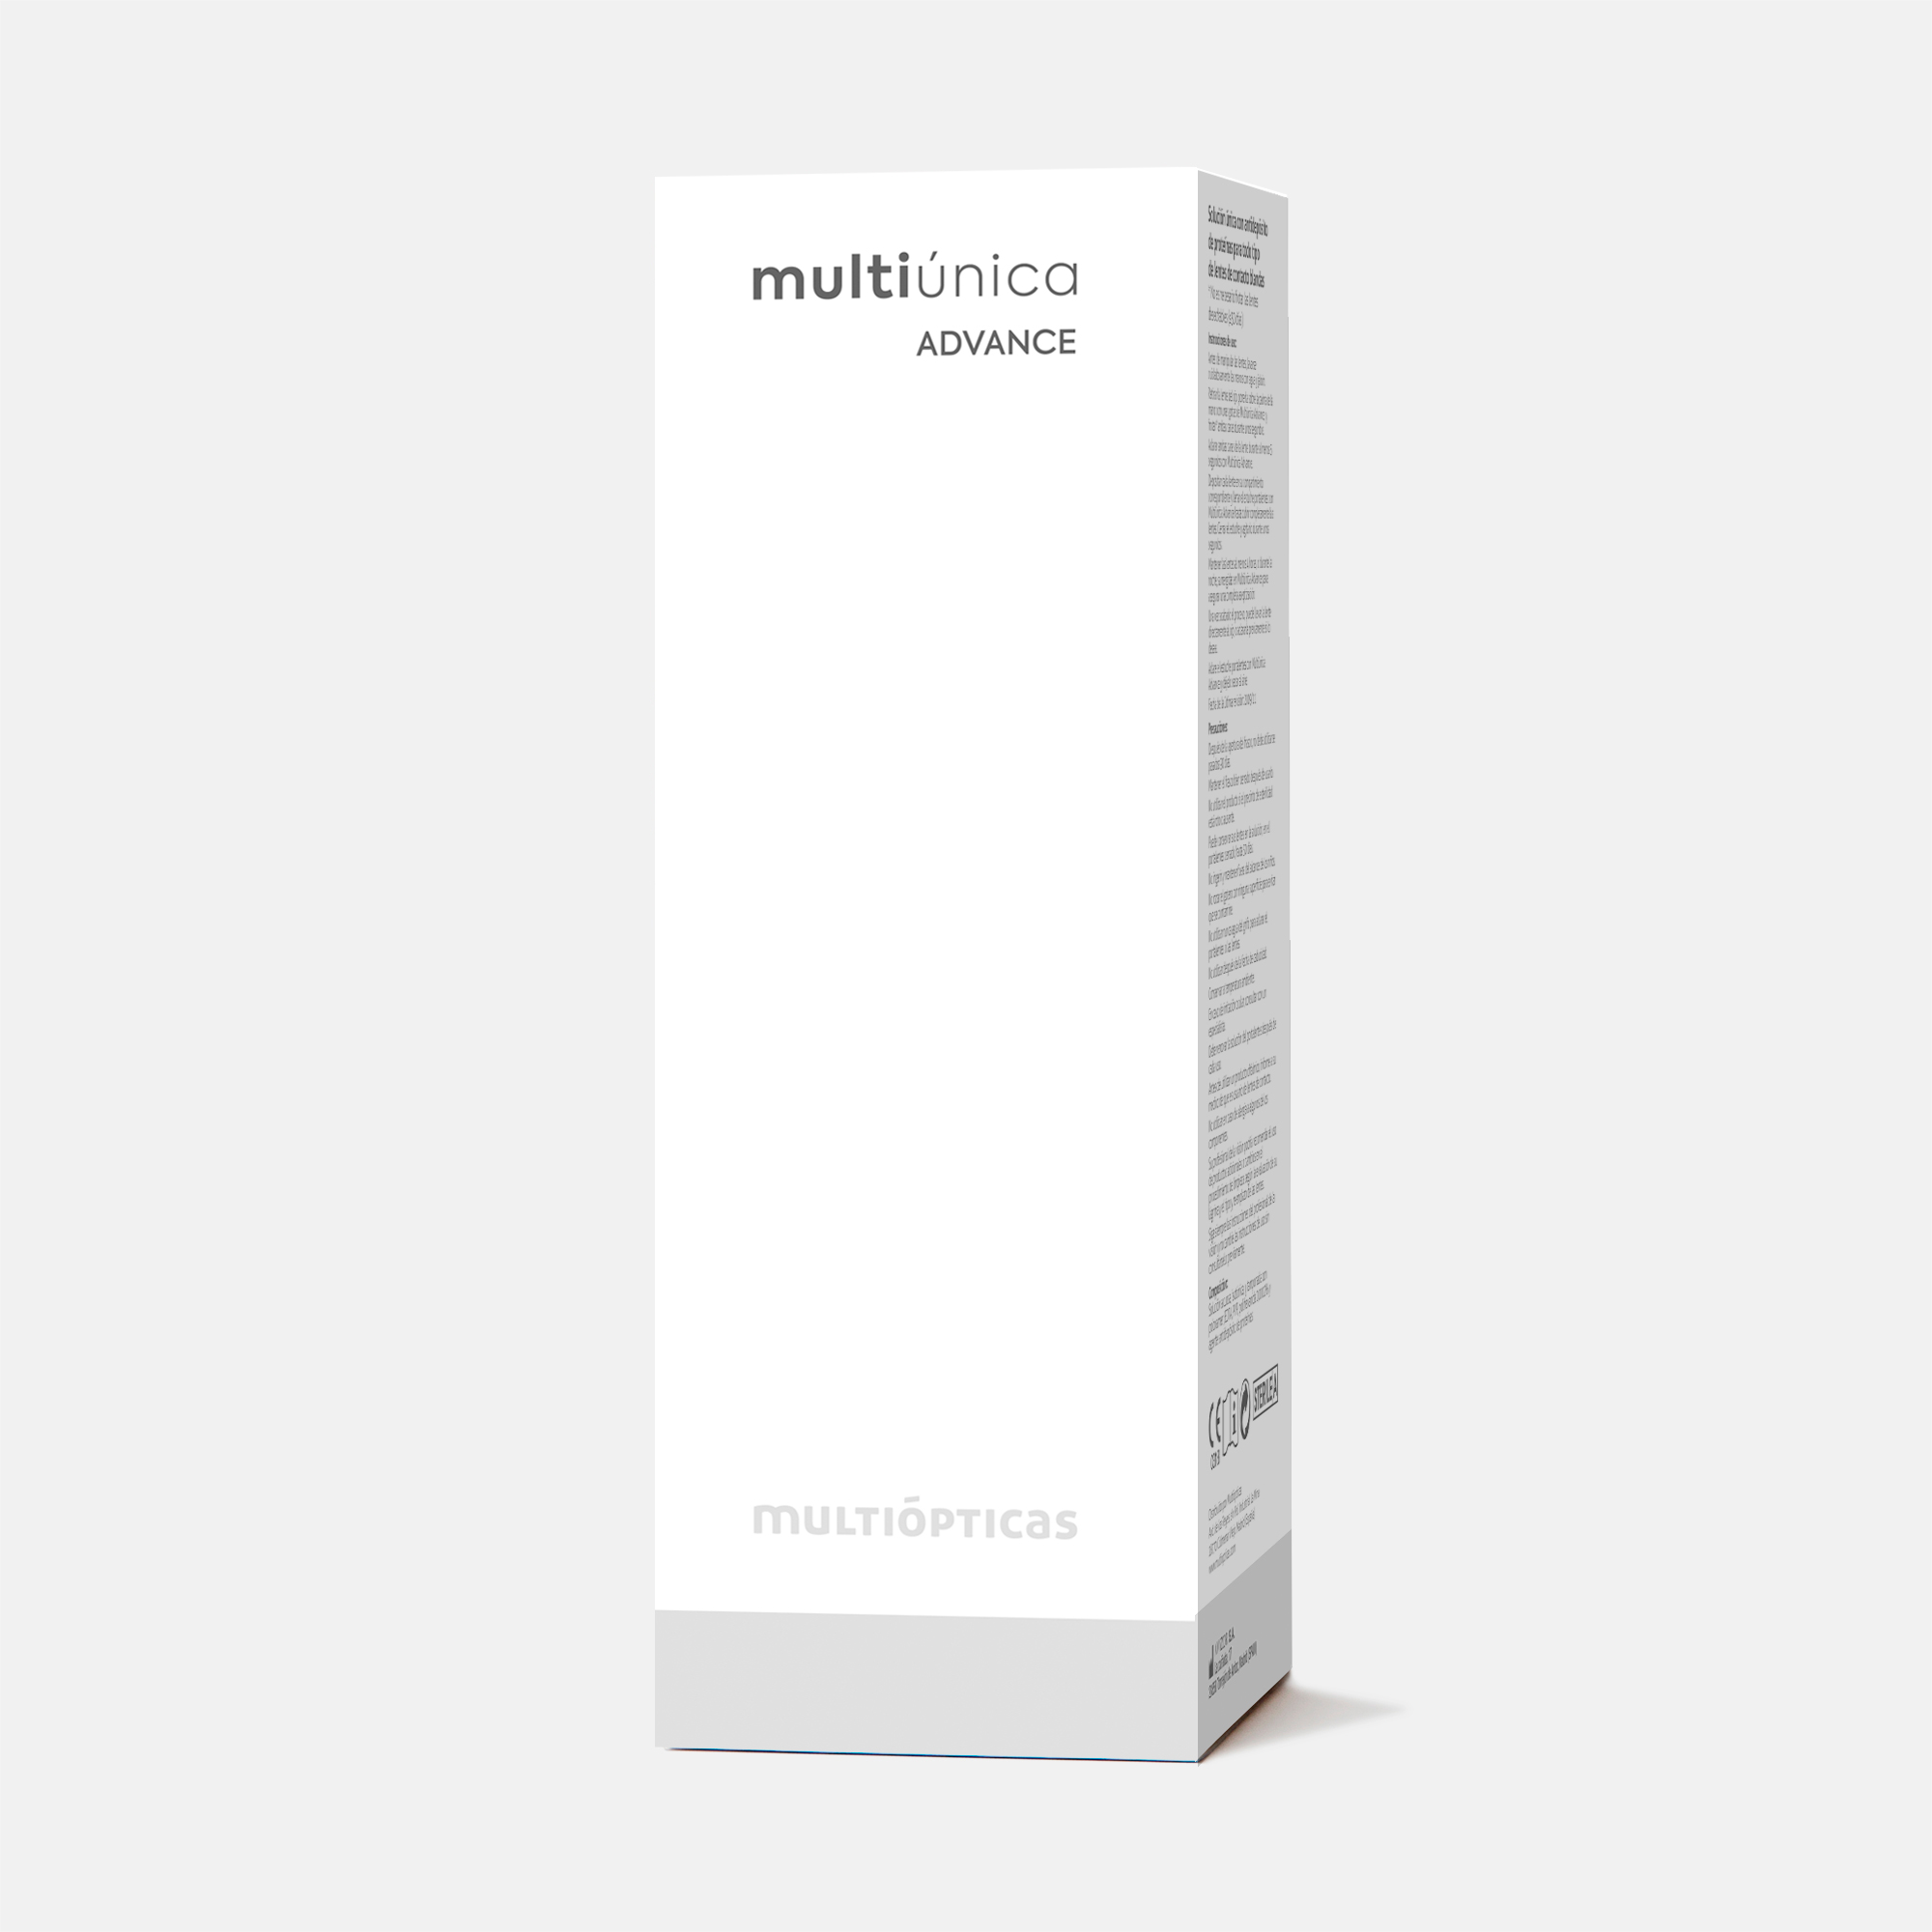 multiúnica advance 500 ml, , hi-res